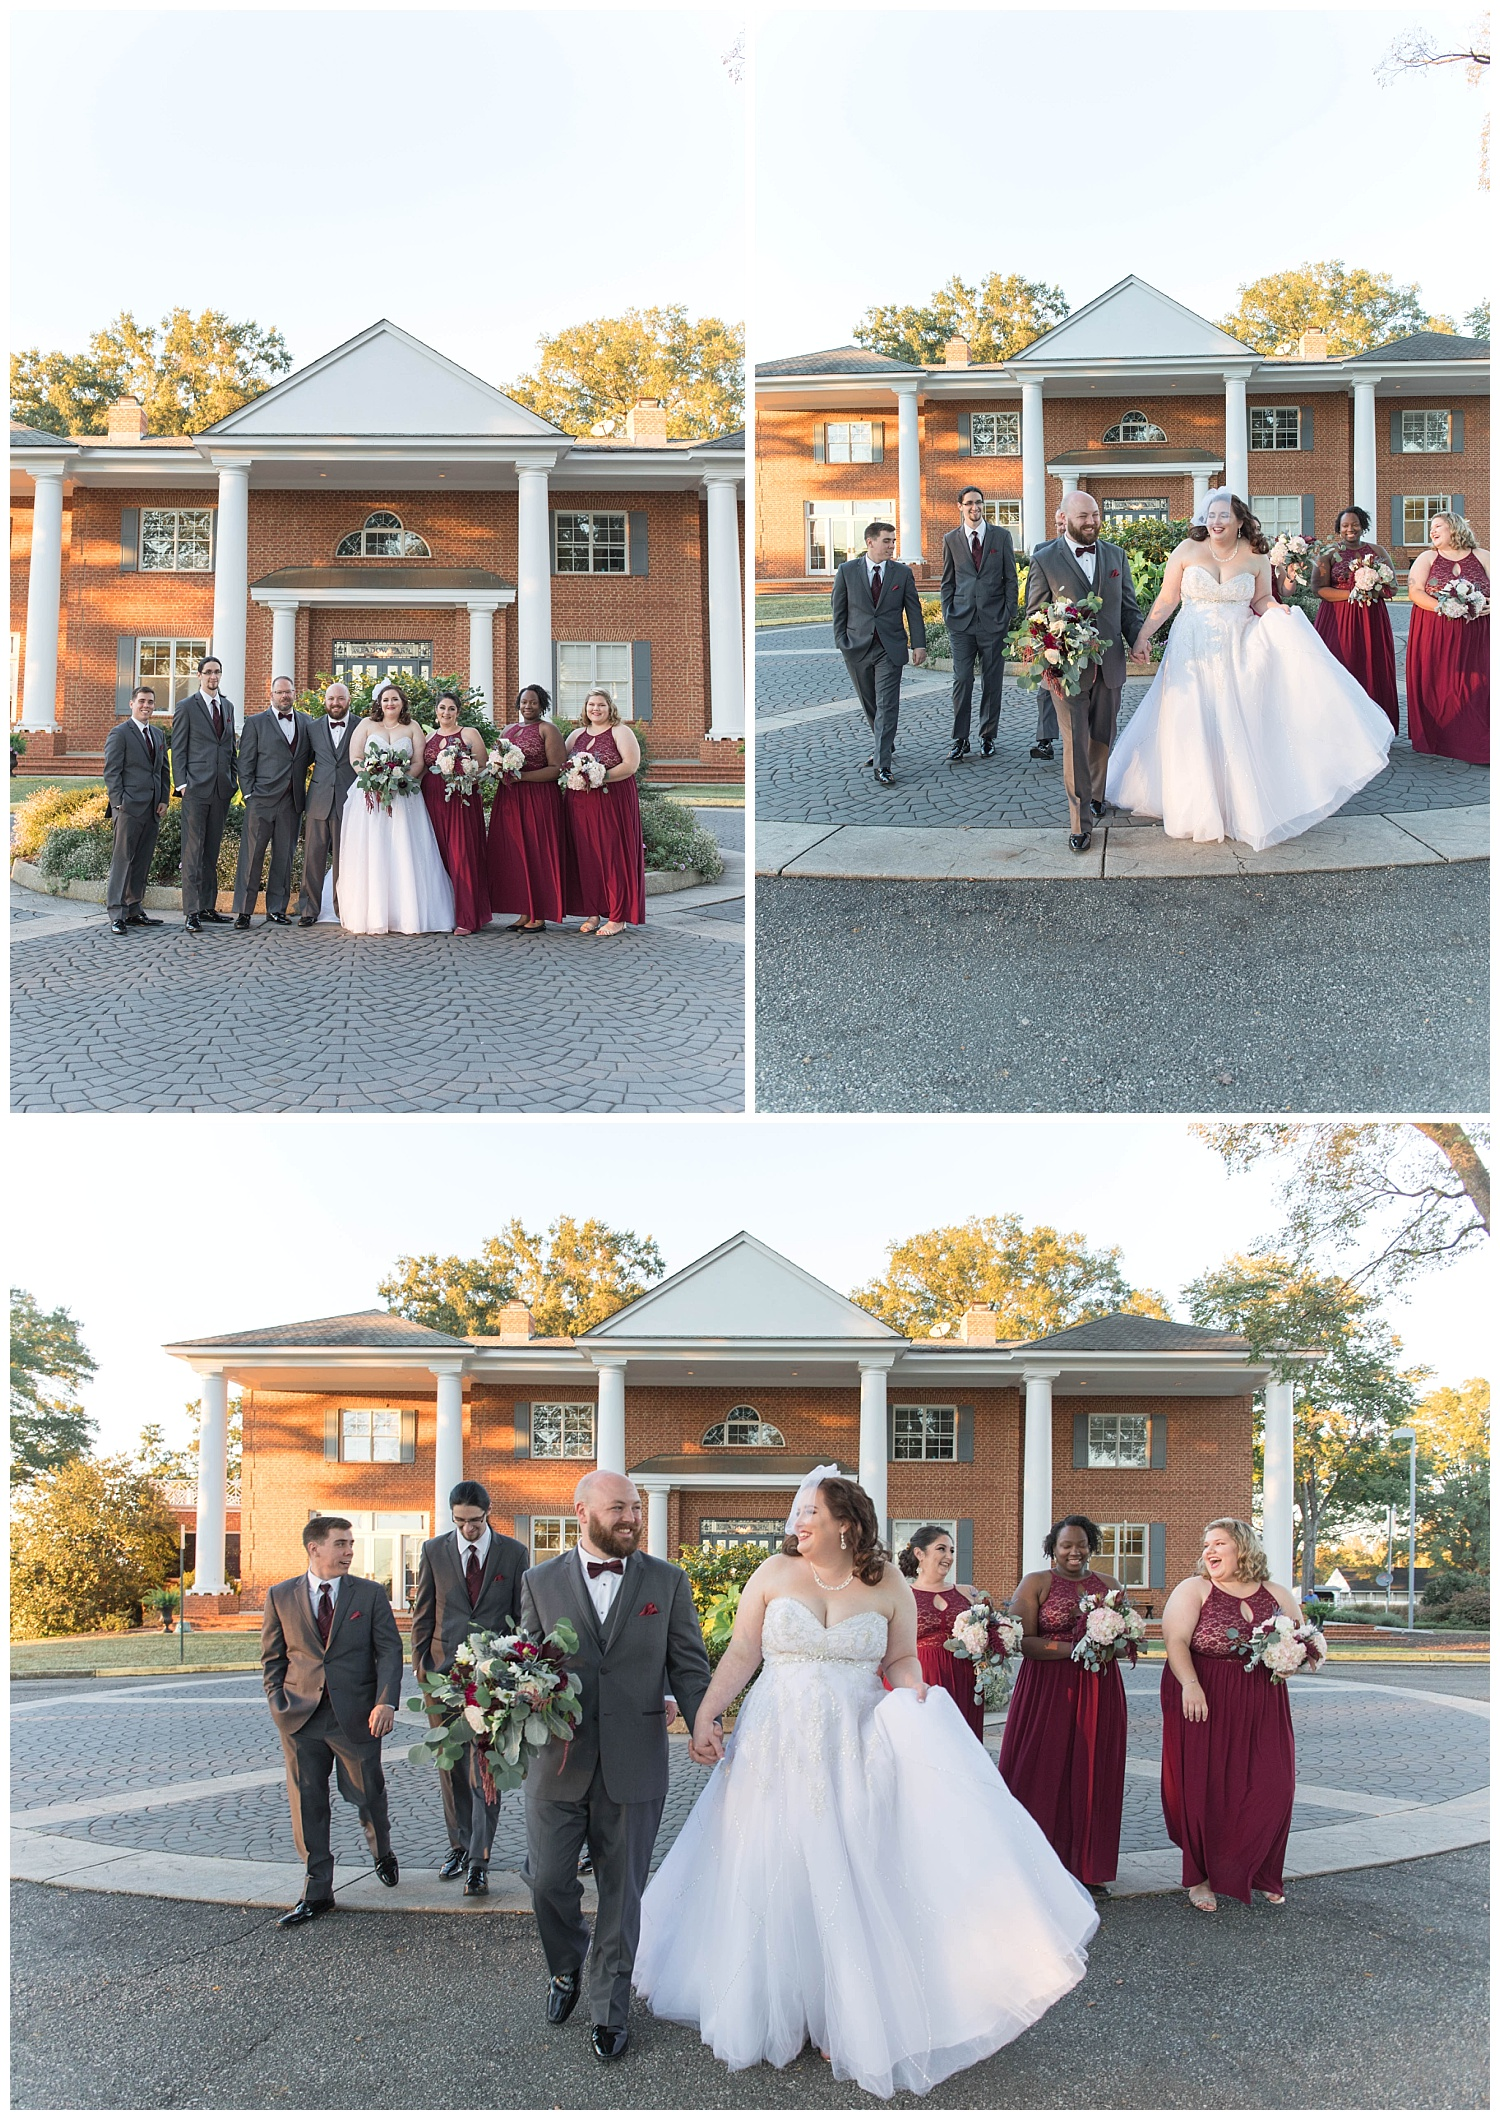 Richmond VA Wedding Photographer - MJ Mendoza | Meadow Event Park Wedding